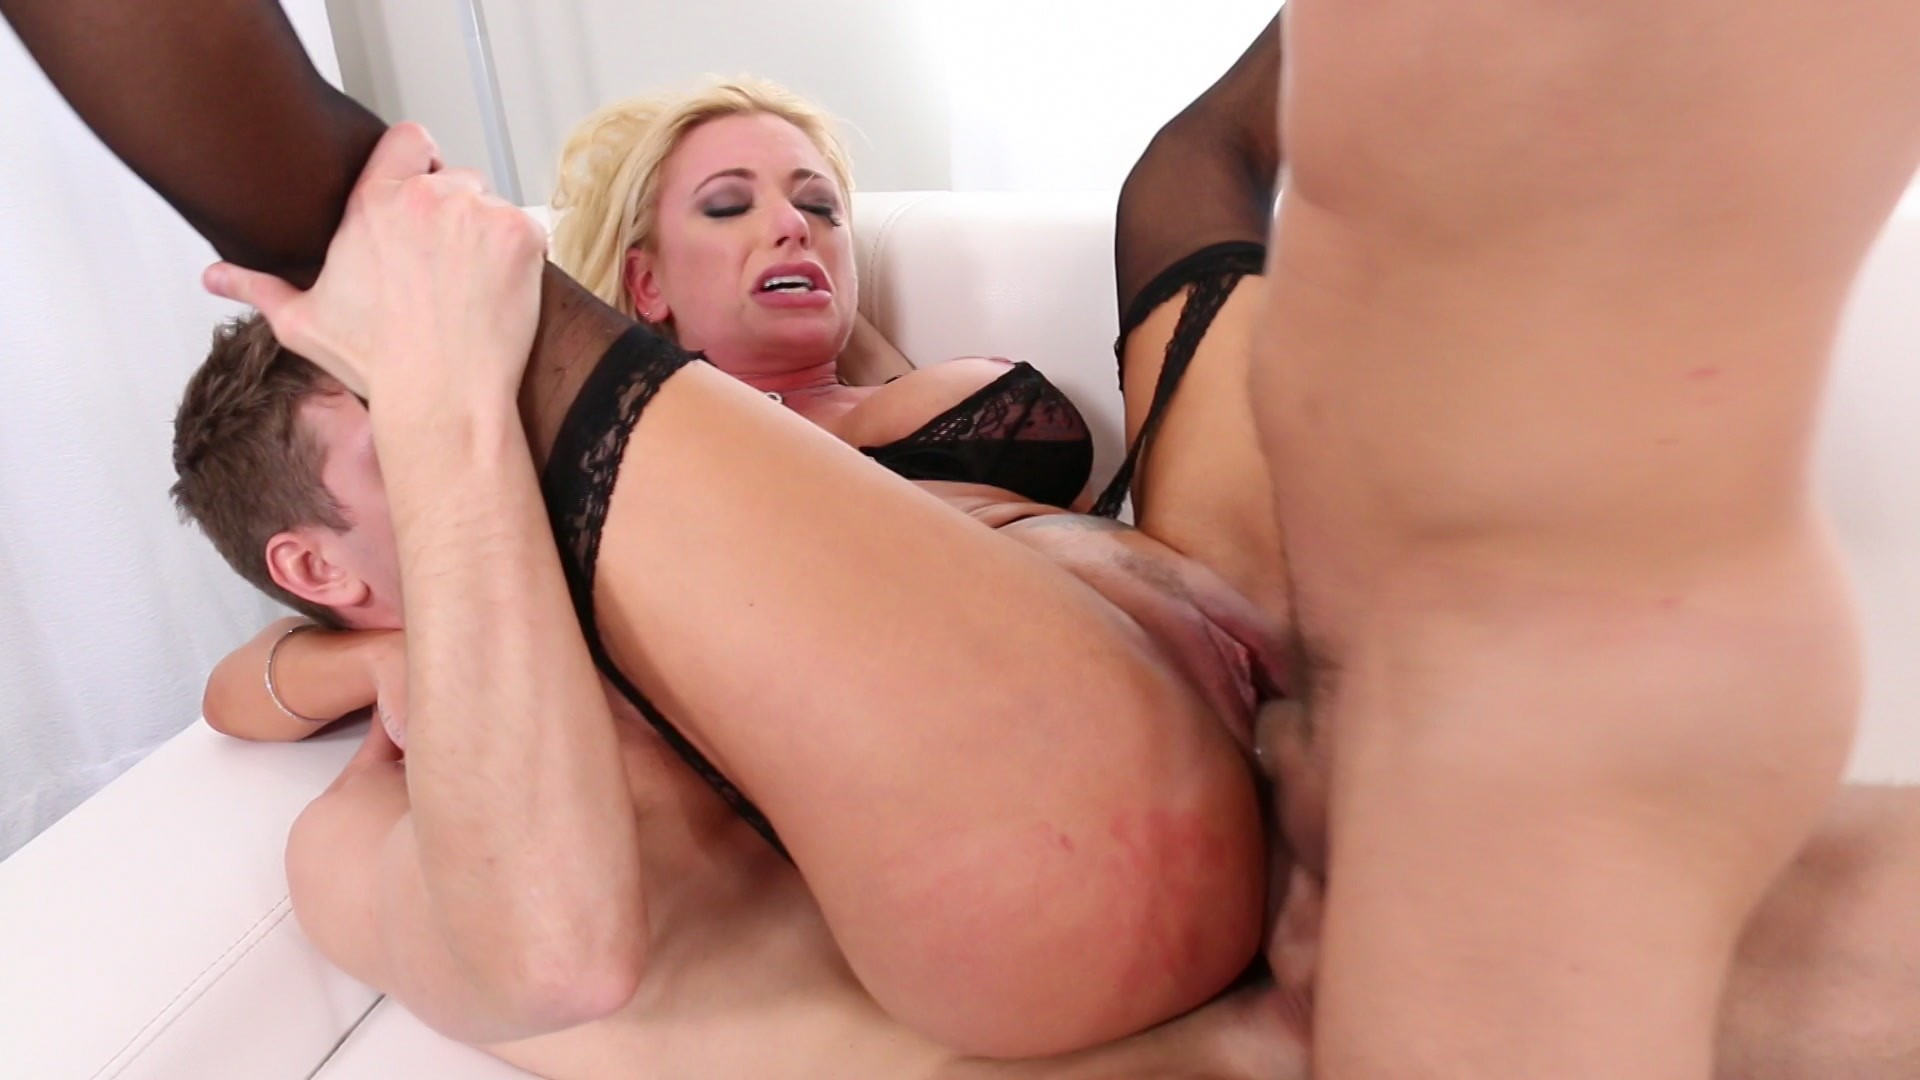 Scene with Briana Banks - image 13 out of 20